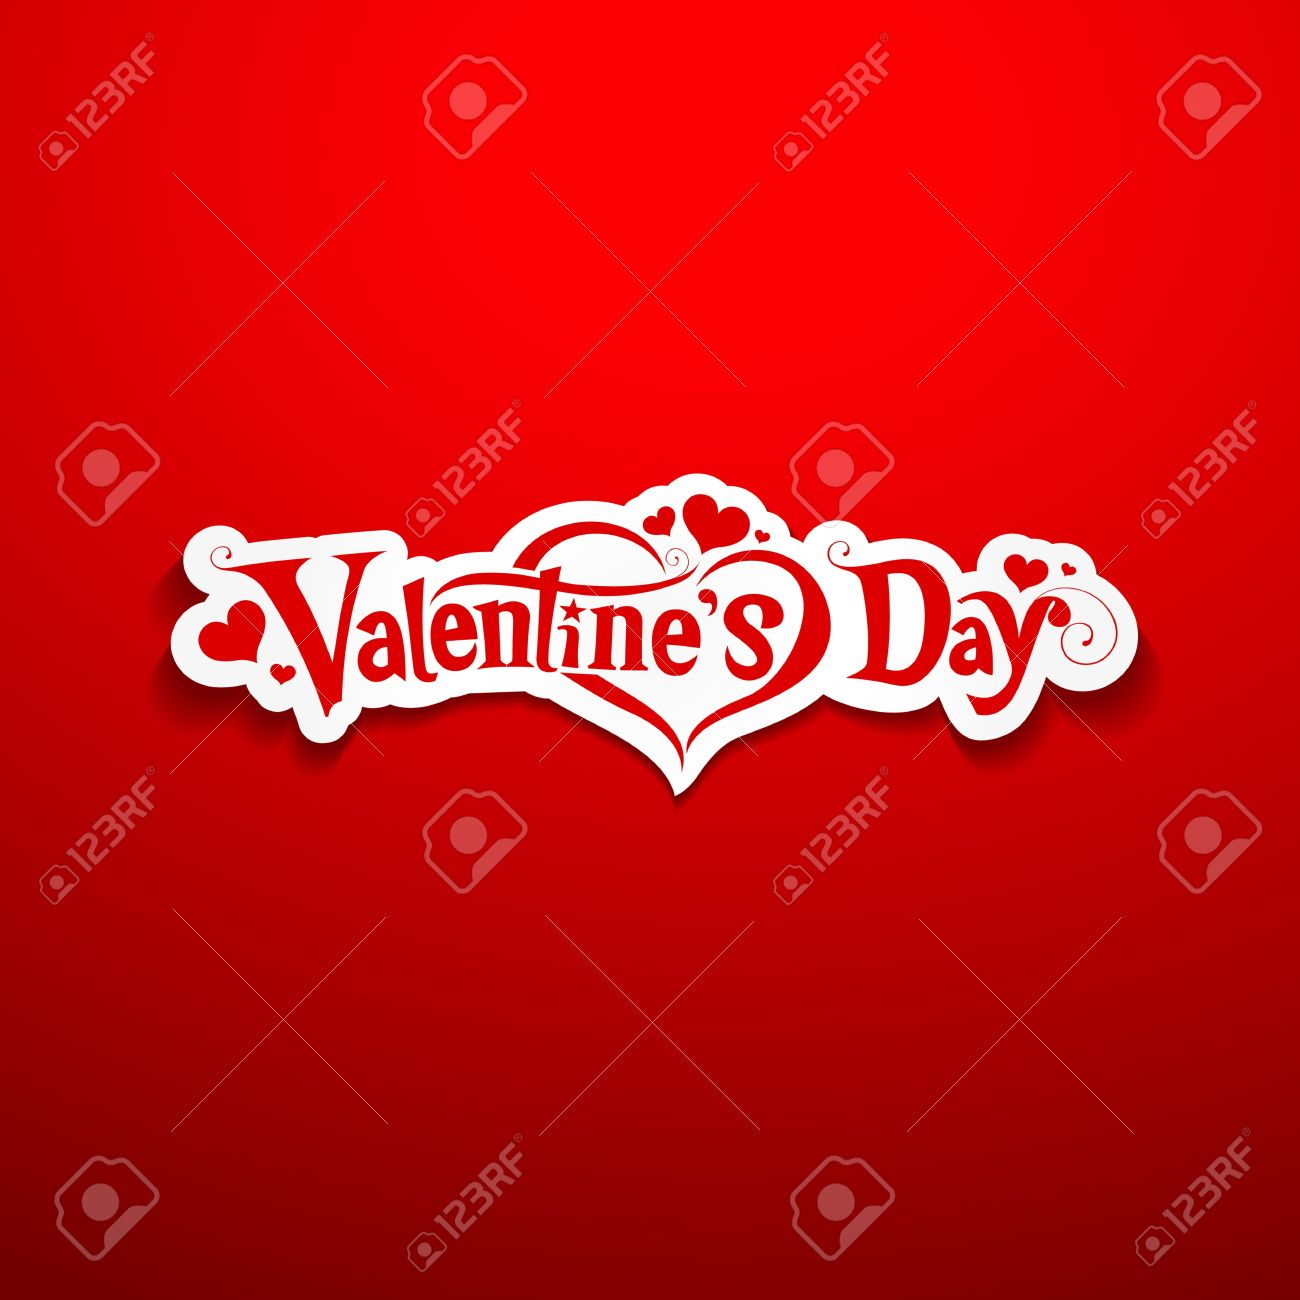 Happy Valentine Day Lettering Design Royalty Free Cliparts Vectors